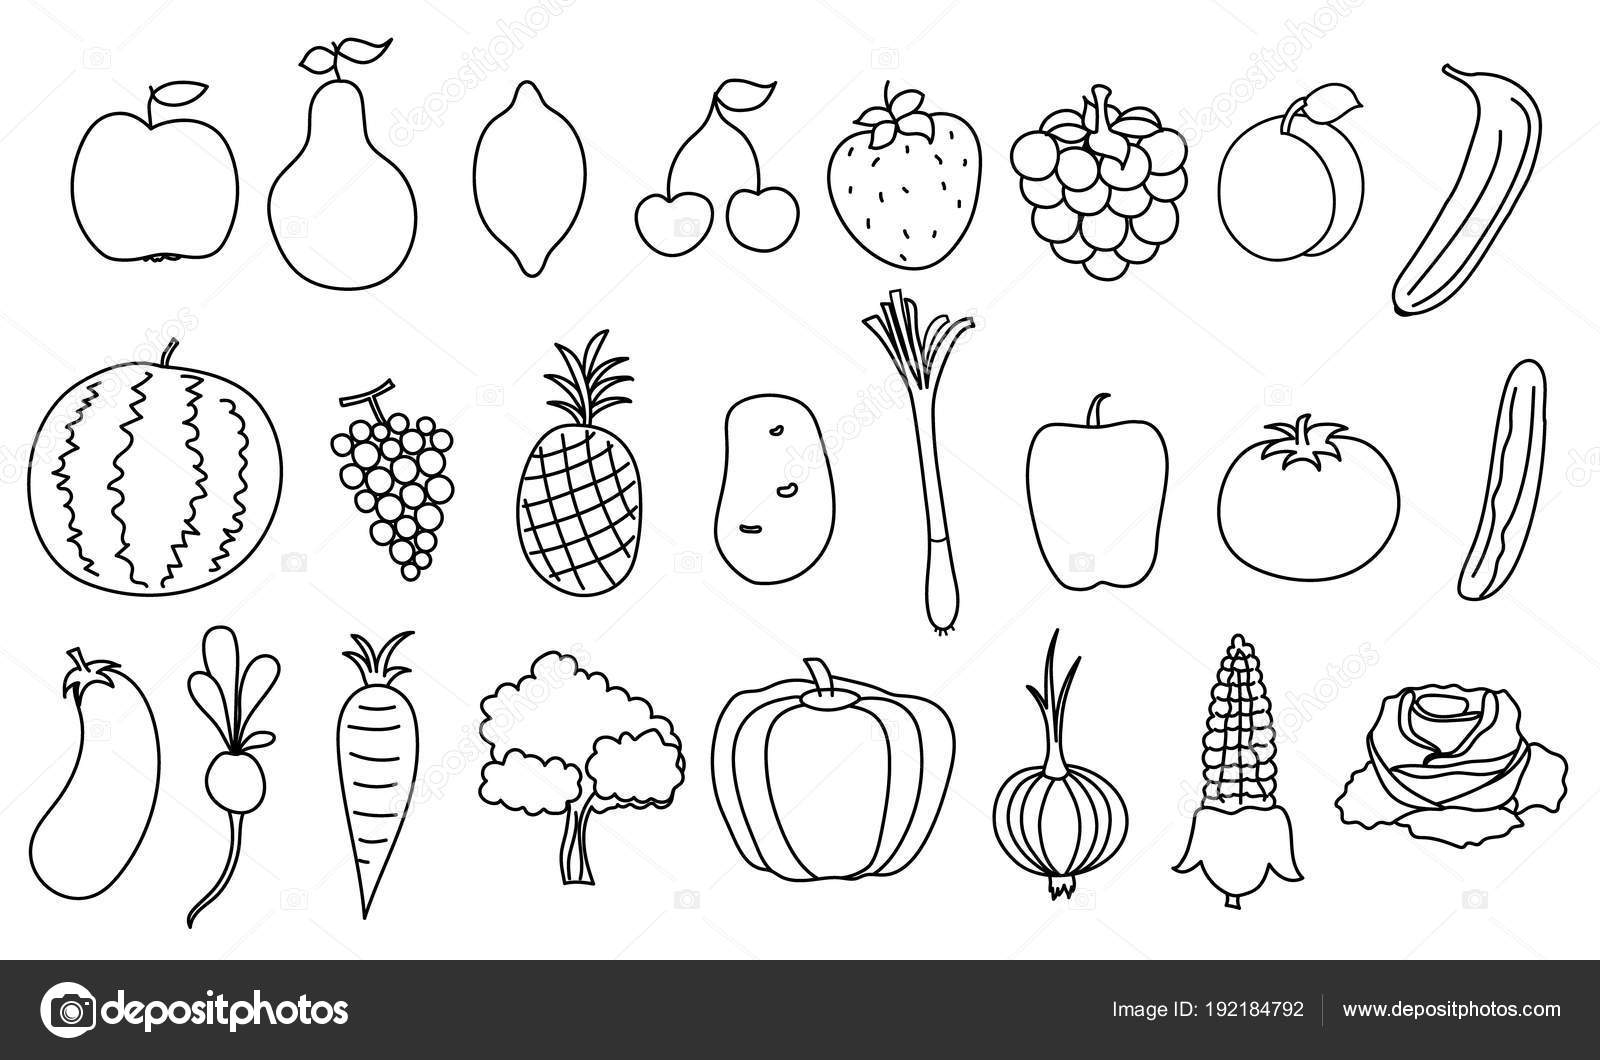 outline of fruits pictures grapes outline foodfruitgrapesgrapesoutlinepnghtml of outline fruits pictures